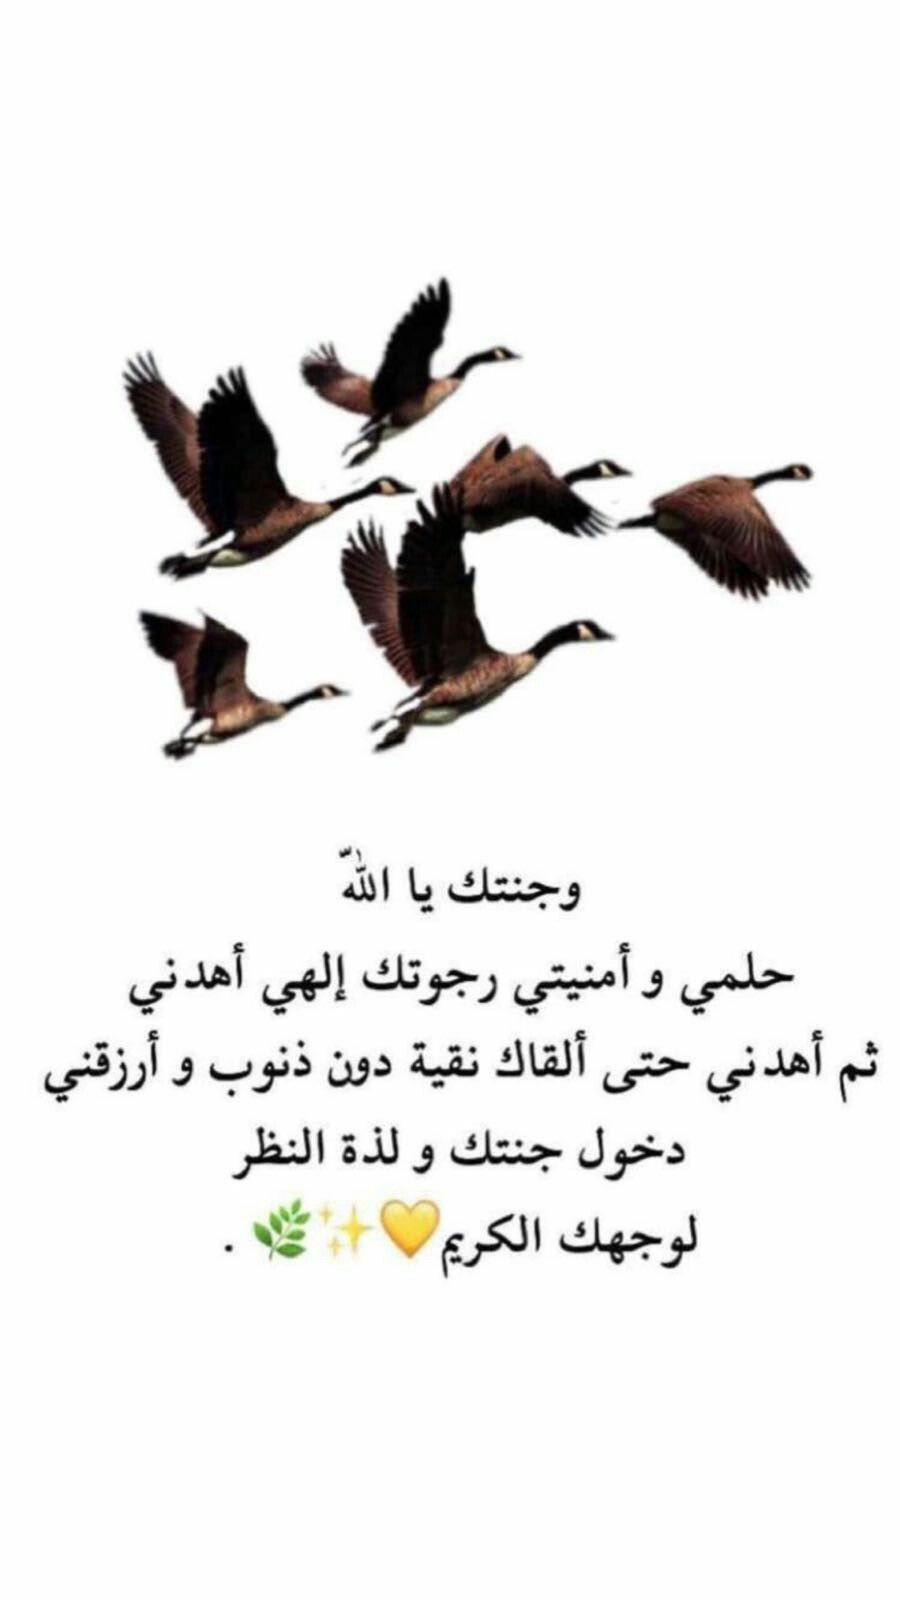 Pin By Leillly On Life With Allah Islamic Quotes Islamic Pictures Arabic Memes